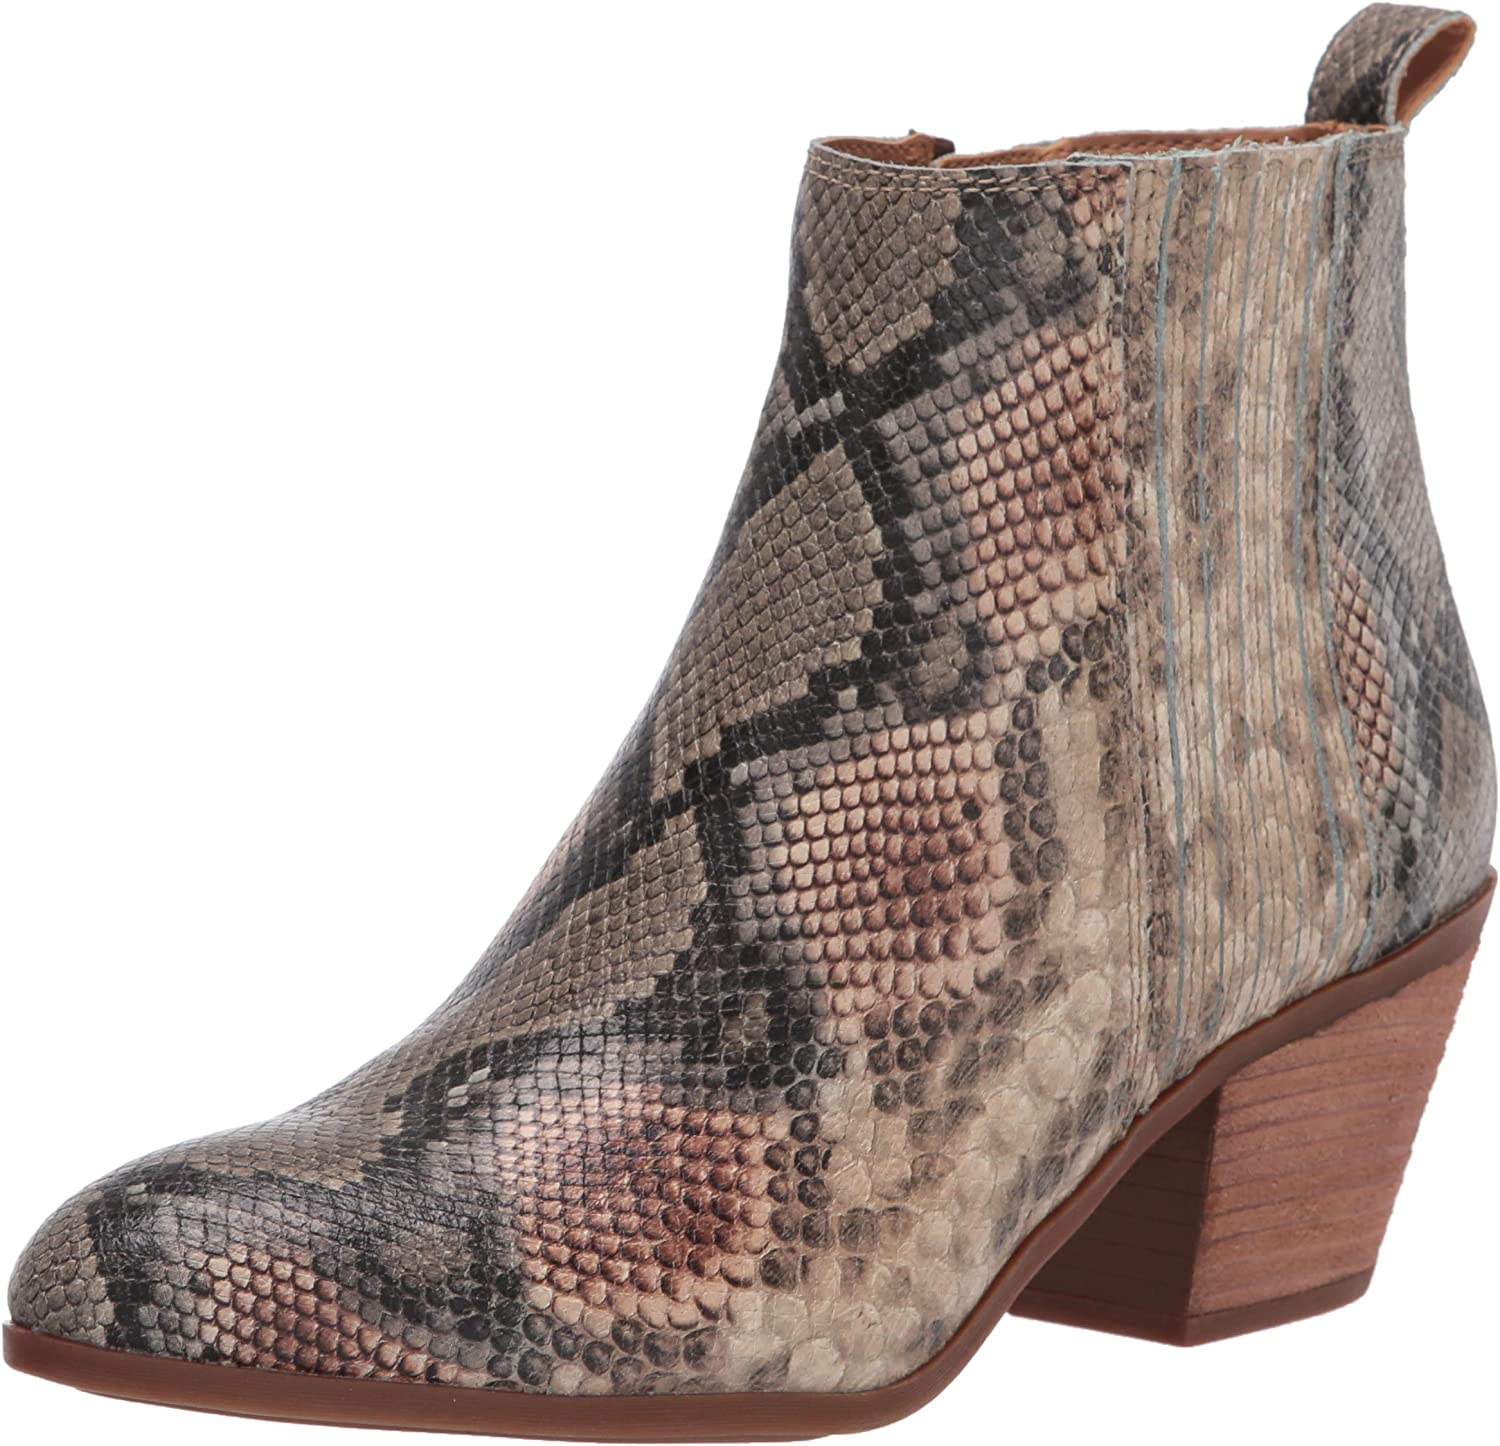 Frye and Co. Women's Chelsea Be super welcome Sale SALE% OFF Boot Jacy